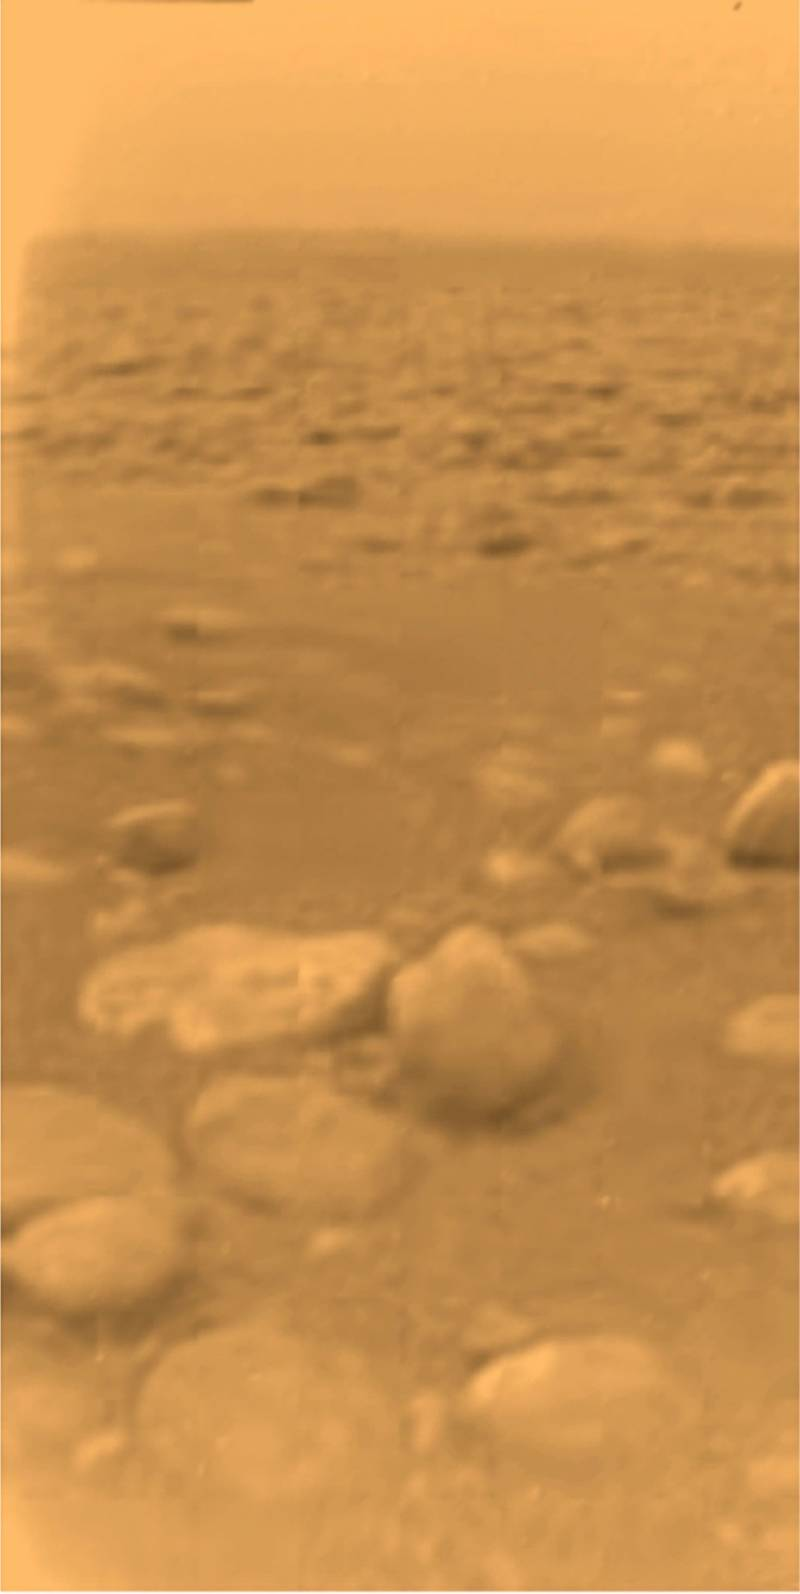 Image from the surface of Titan taken by the ESA Huygens probe in 2005.